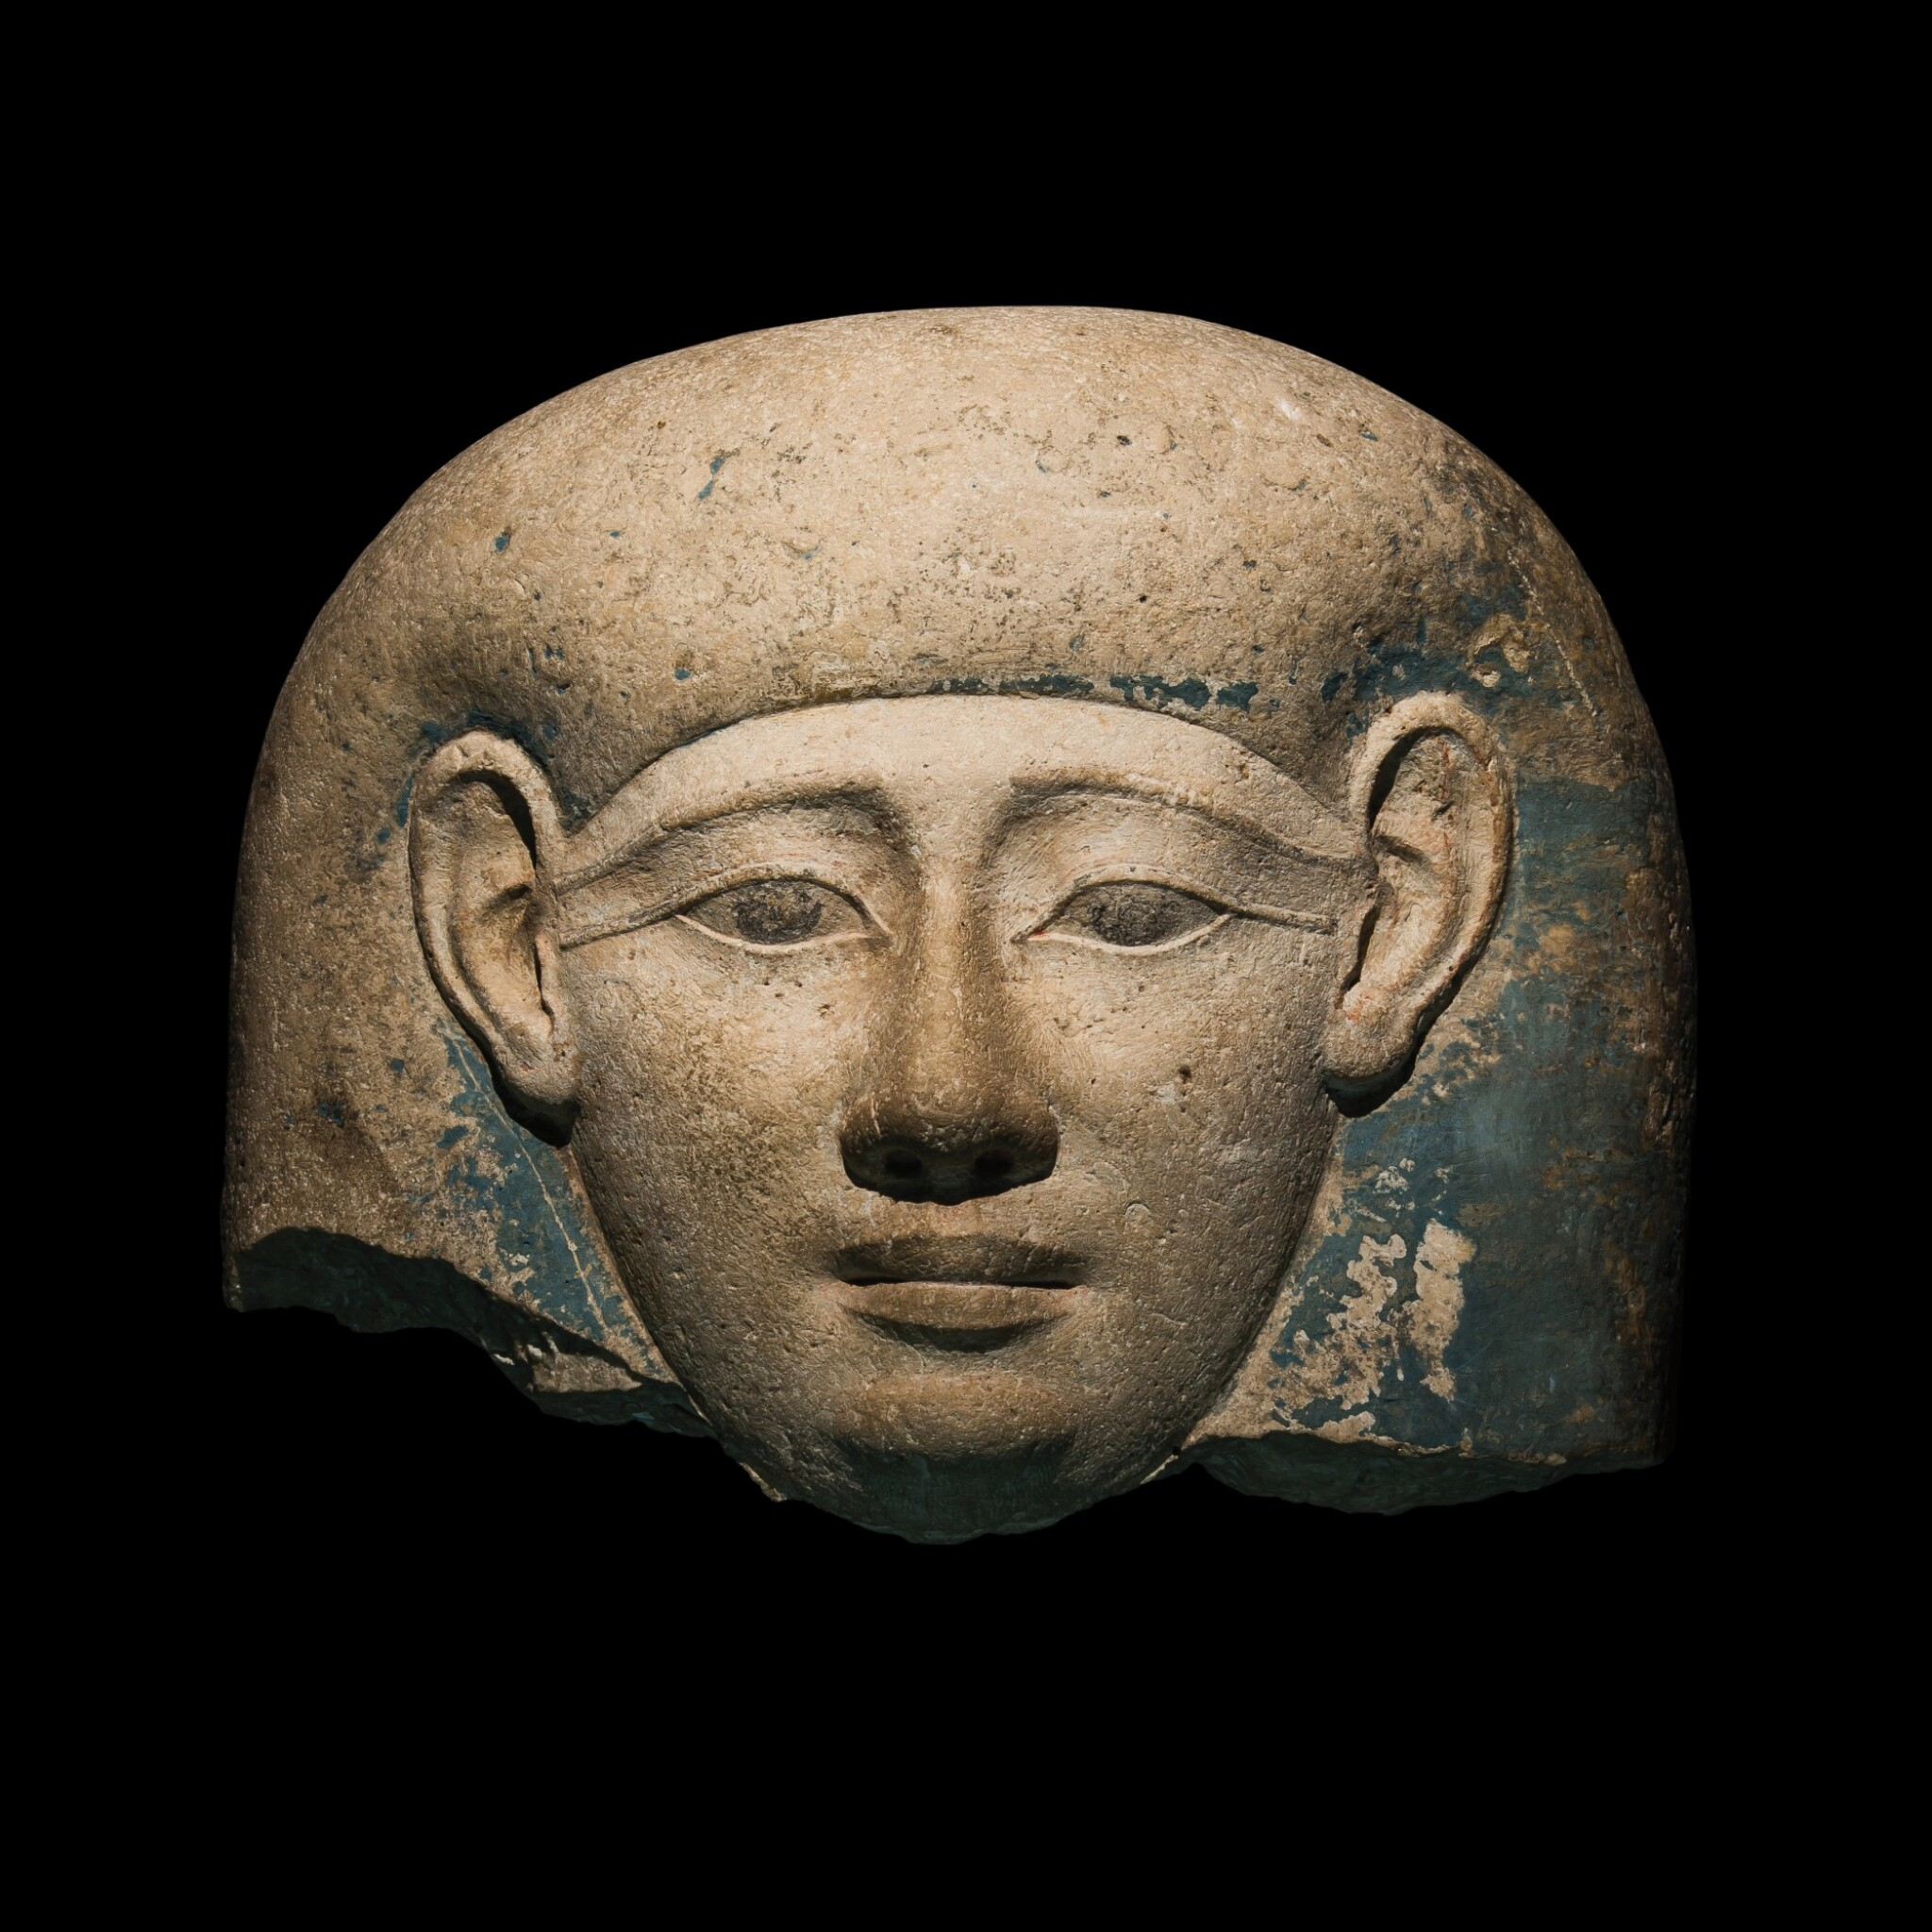 View 1 of Lot 45. An Egyptian Limestone Sarcophagus Mask, 30th Dynasty/early Ptolemaic Period, circa 380-250 B.C..